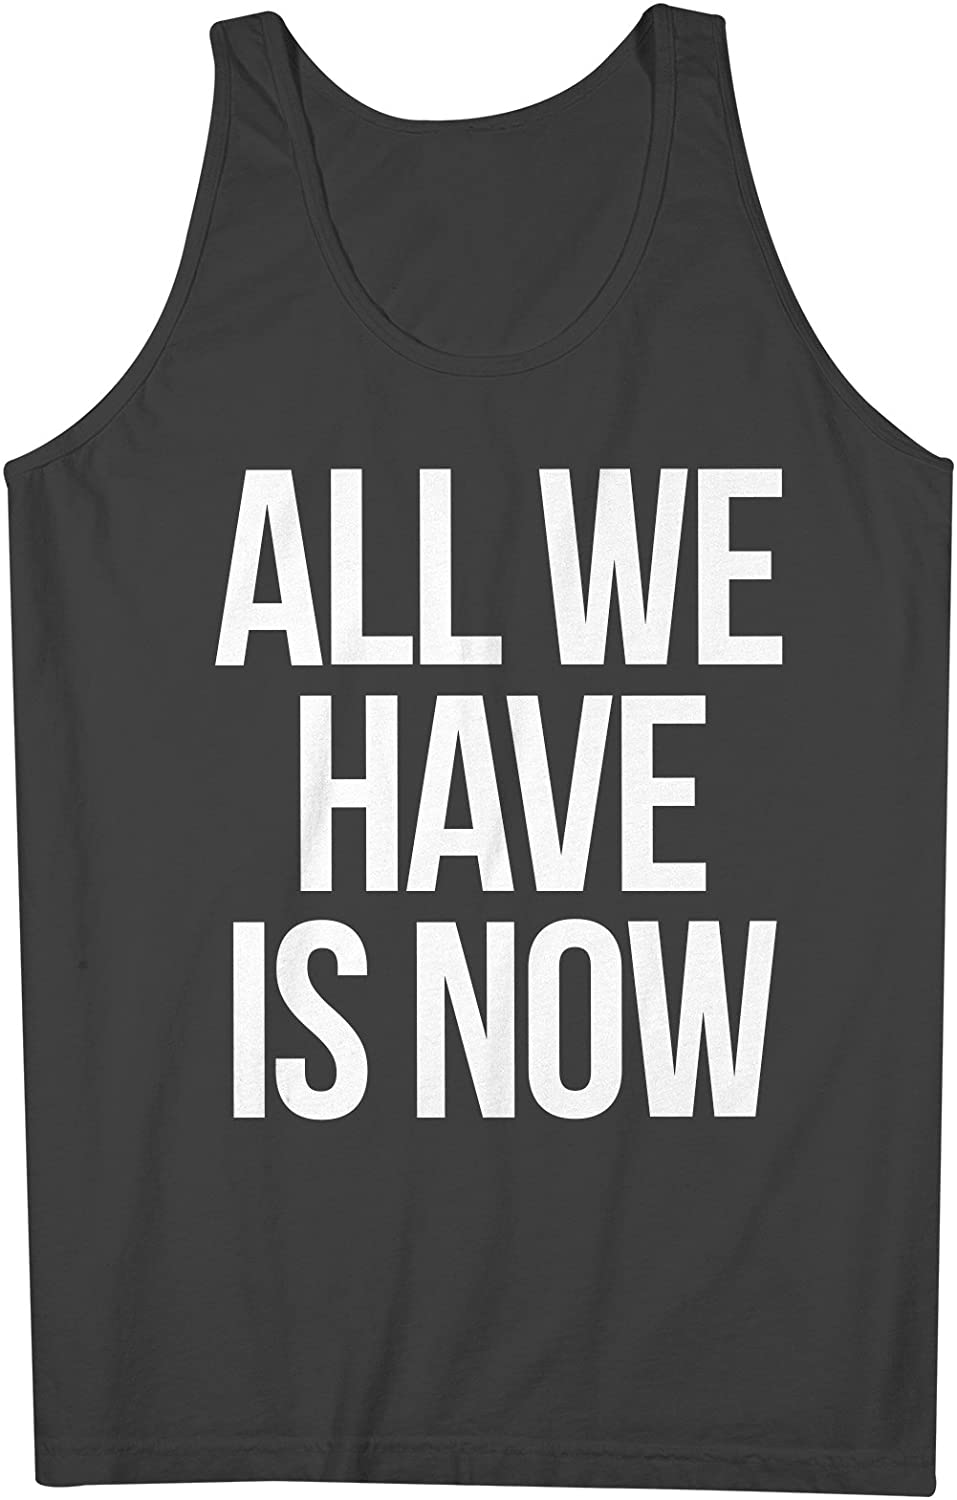 All I Have Is Now Motivational Moment Mens Tank Top Sleeveless Shirt